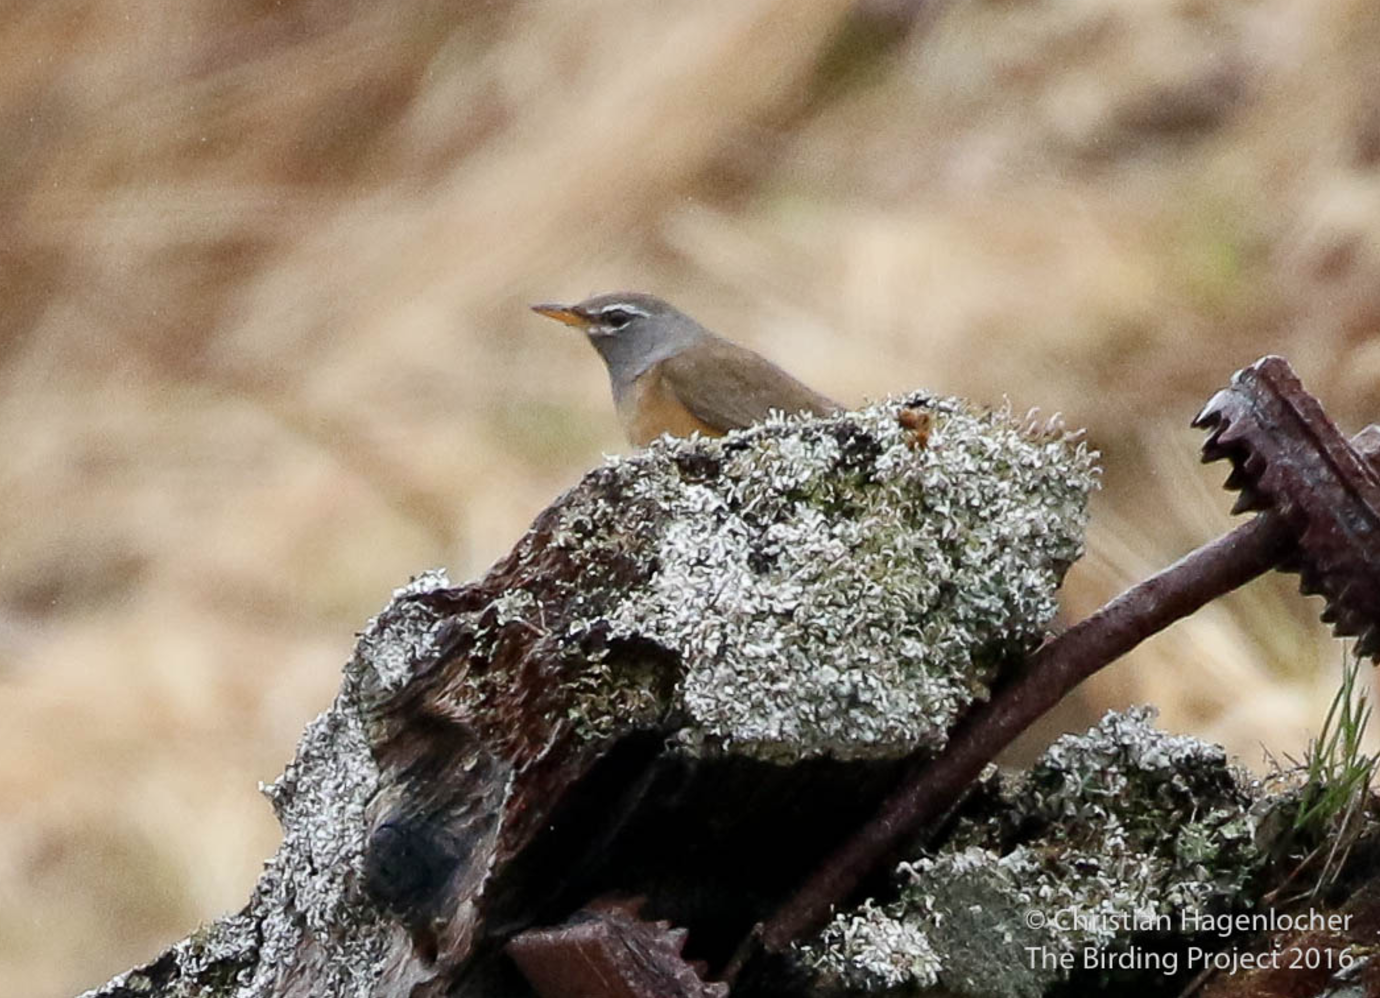 Rarities we found in 2016 included Eyebrowed Thrush (above) Brambling, Rustic Bunting, and Eurasian Hobby